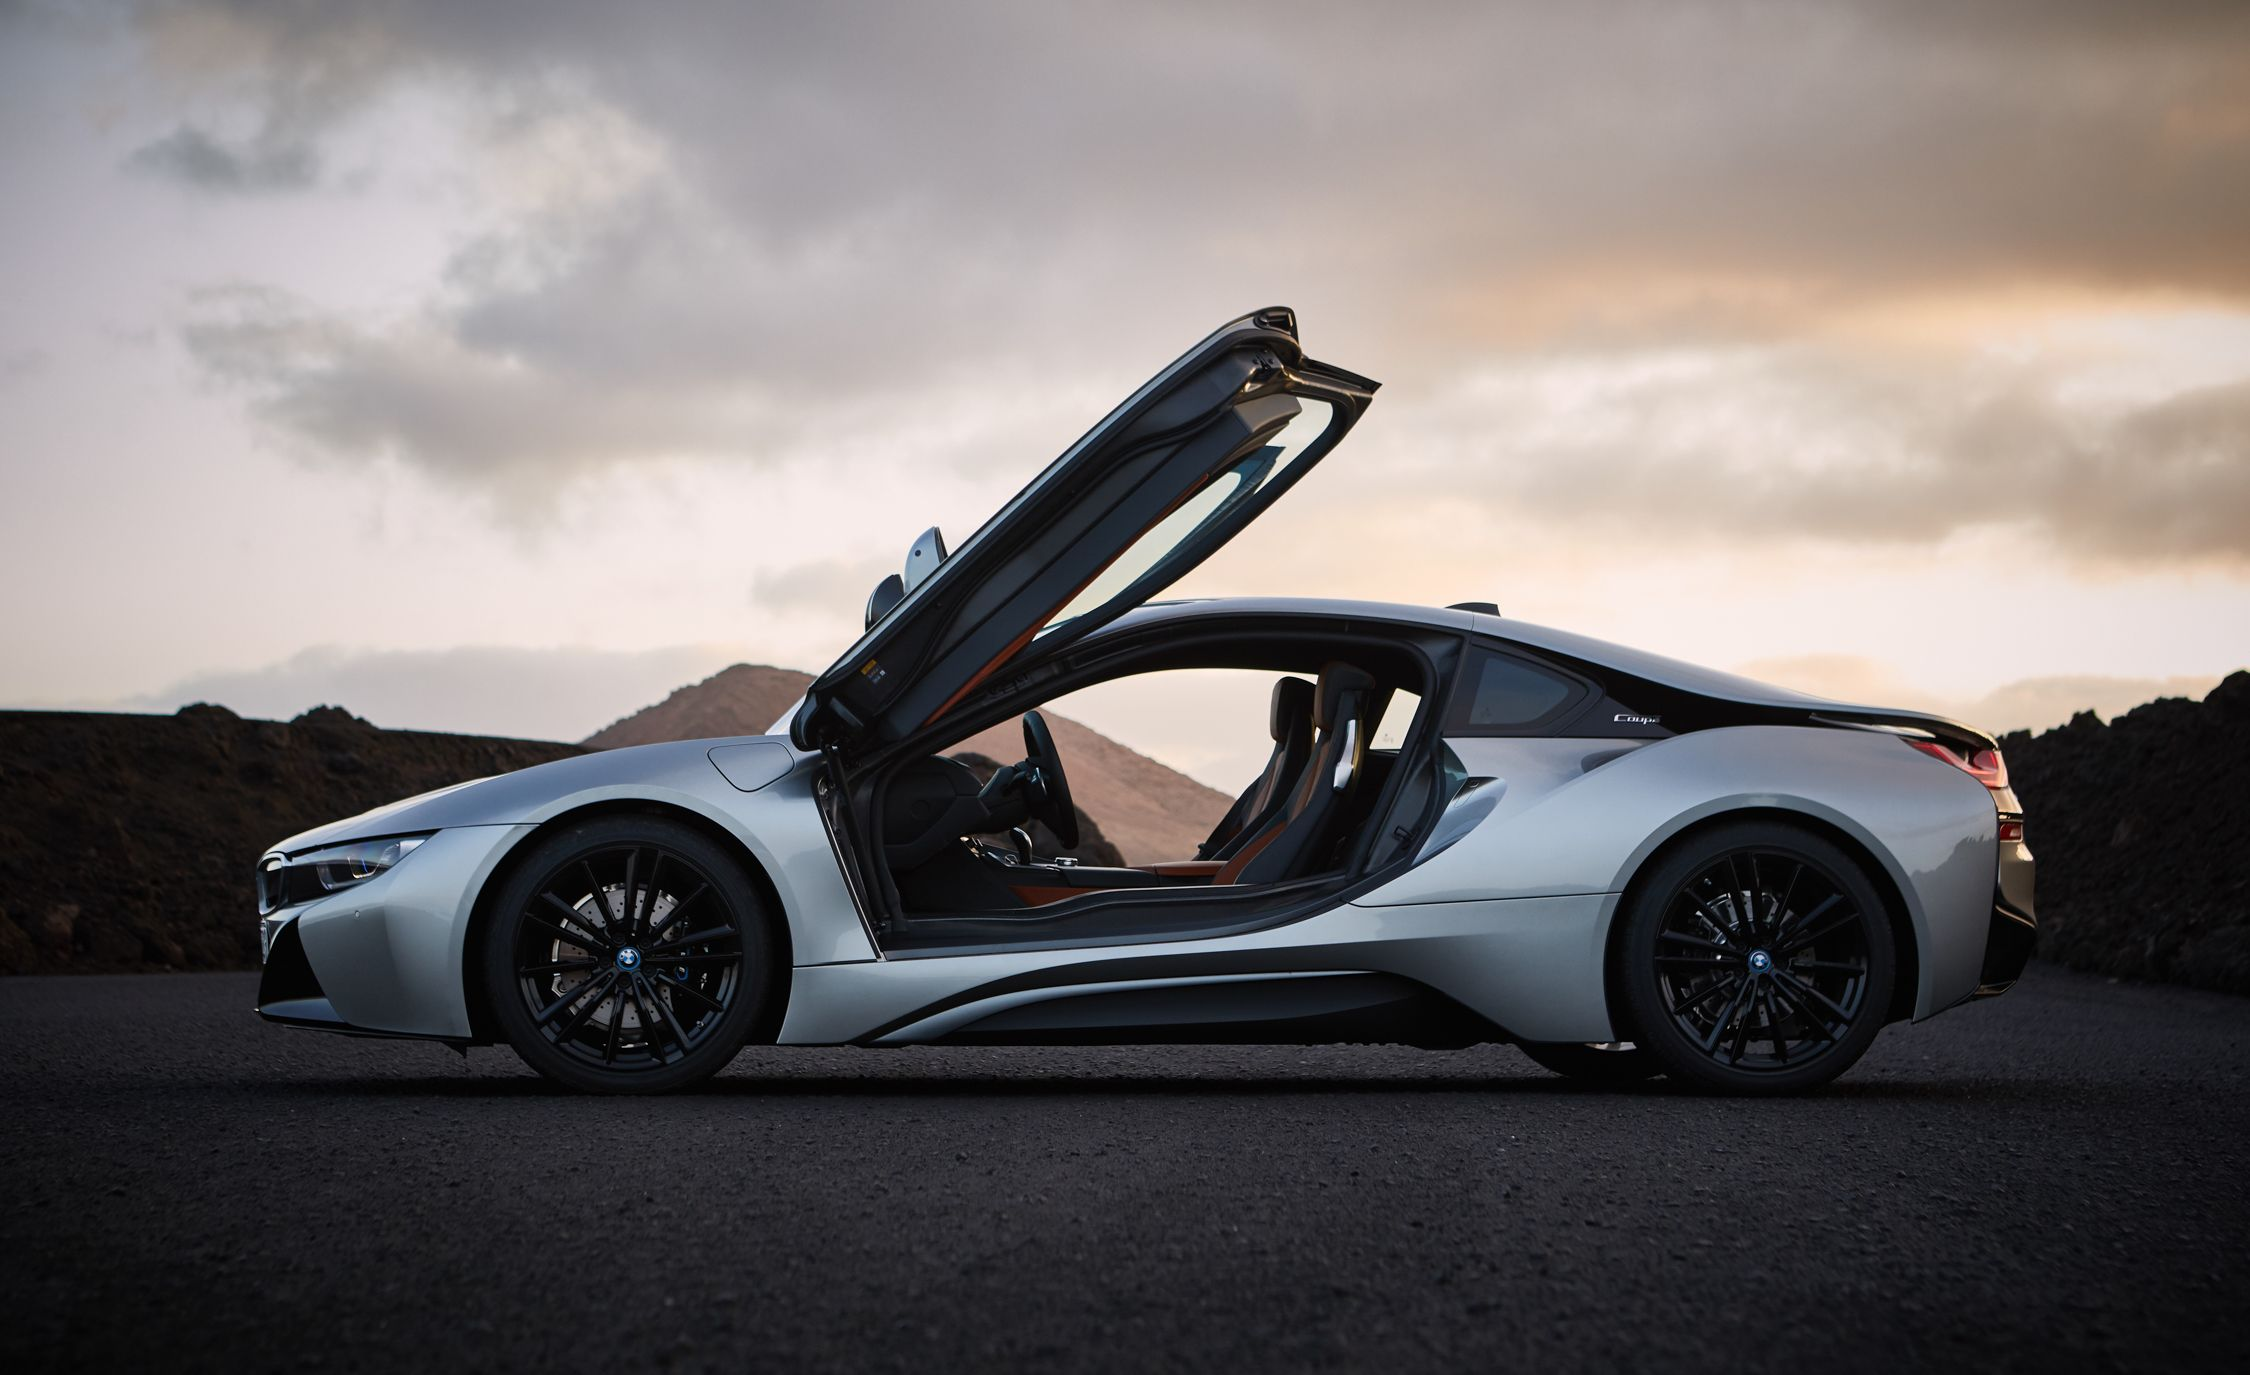 BMW I Reviews BMW I Price Photos And Specs Car And Driver - 2015 bmw i8 msrp